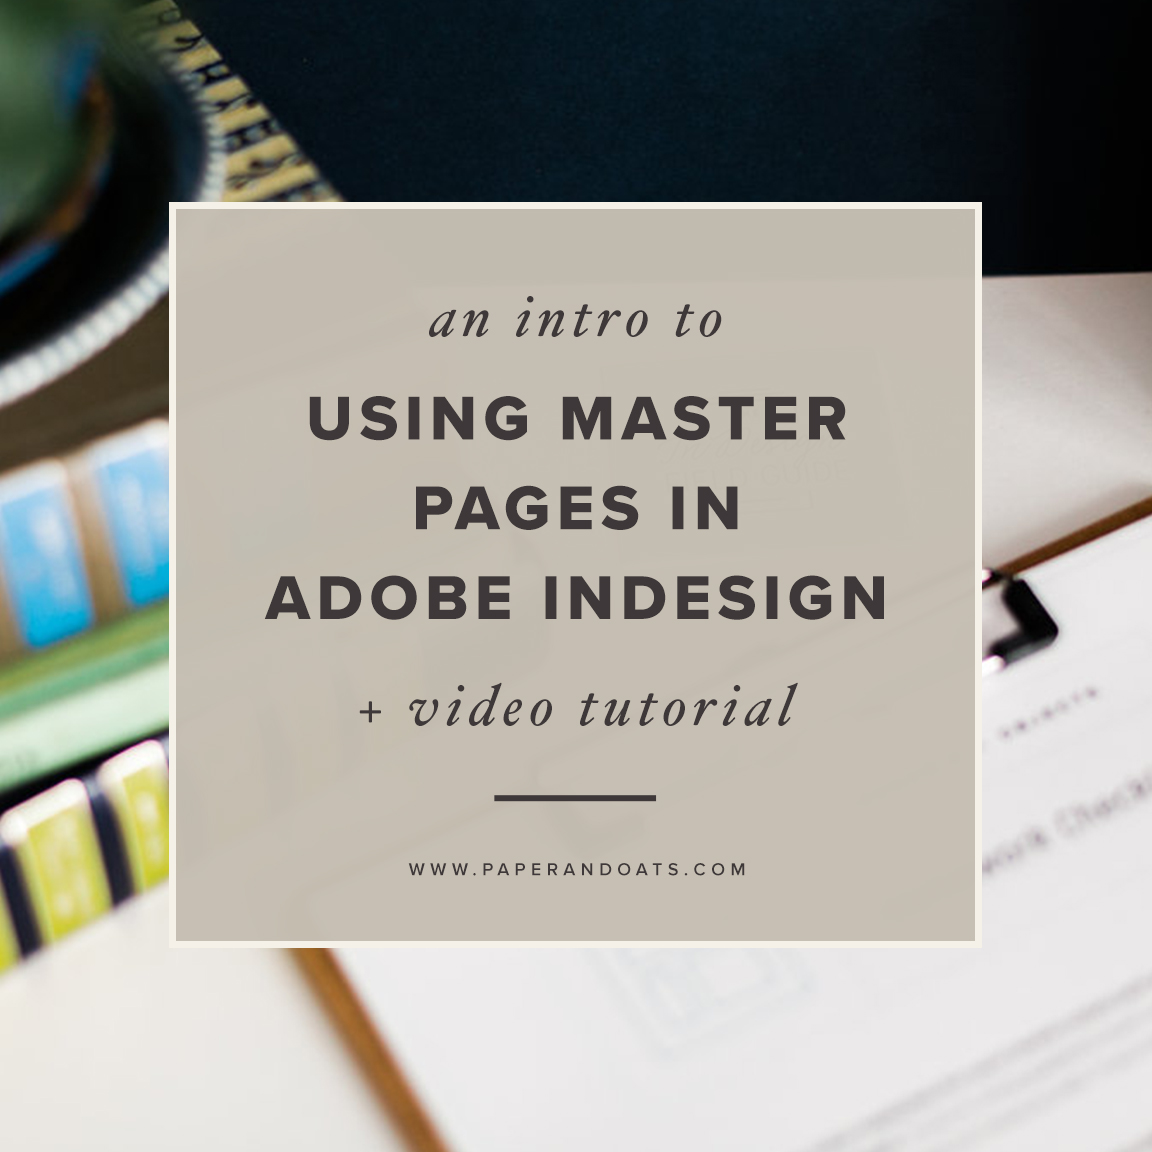 An intro to using master pages in Adobe InDesign (+ video tutorial) — by Paper + Oats